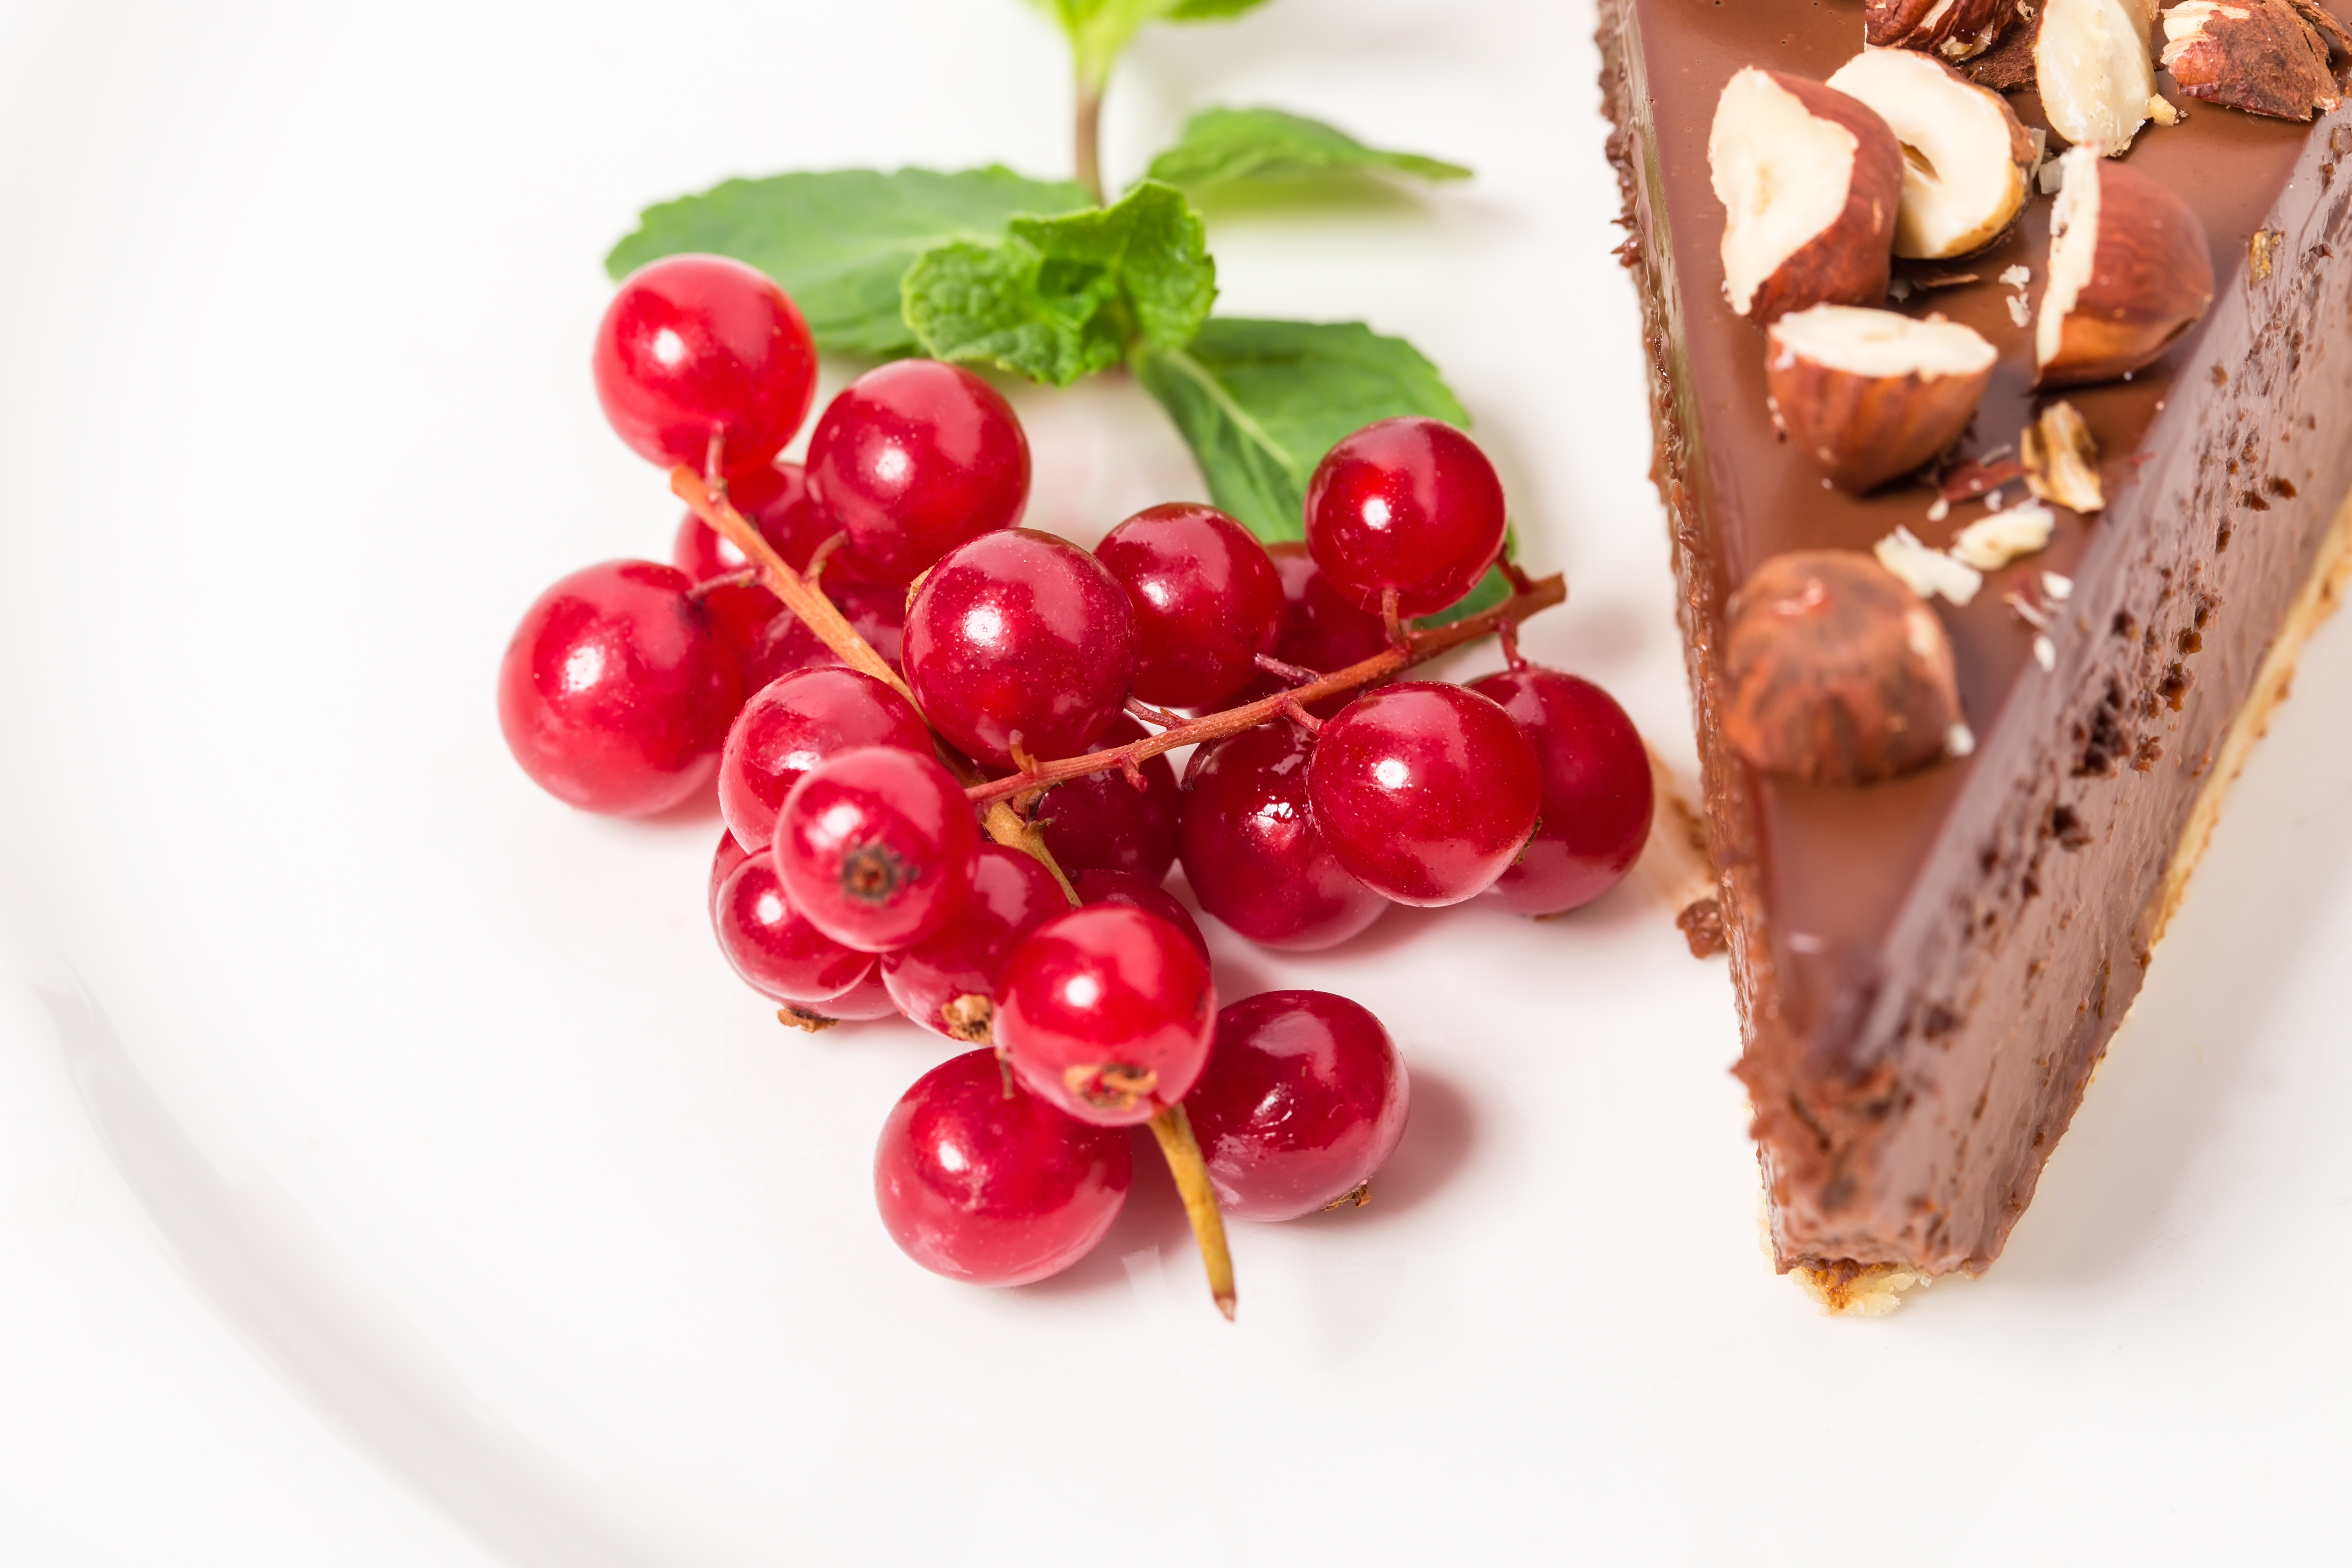 chocolate-cheesecake-with-hazelnuts-PNZA